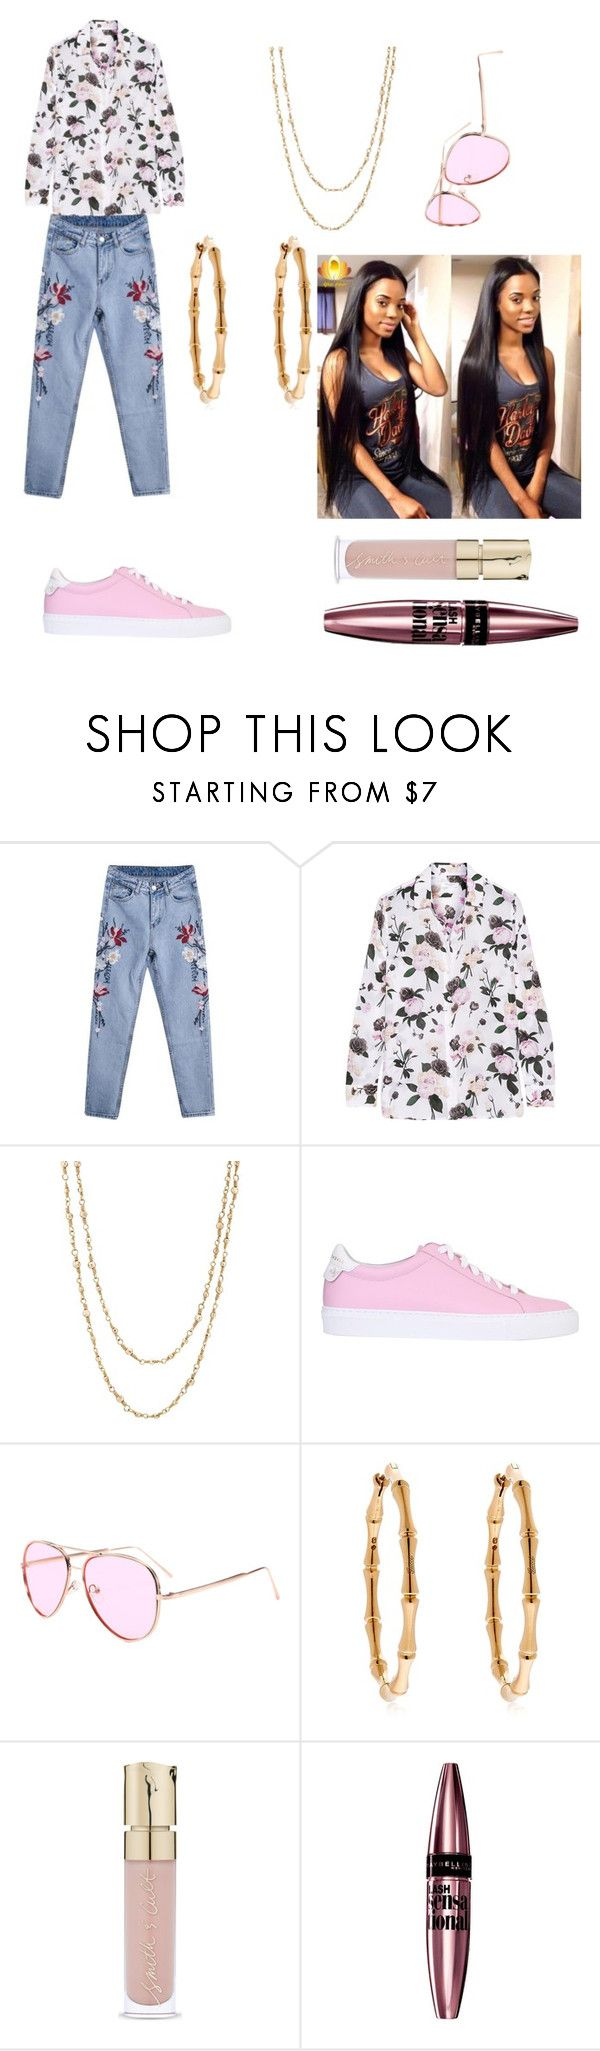 """""""Chase checks"""" by fashionkillakaren ❤ liked on Polyvore featuring Equipment, Samira 13, Givenchy, Gucci, Smith & Cult and Maybelline"""